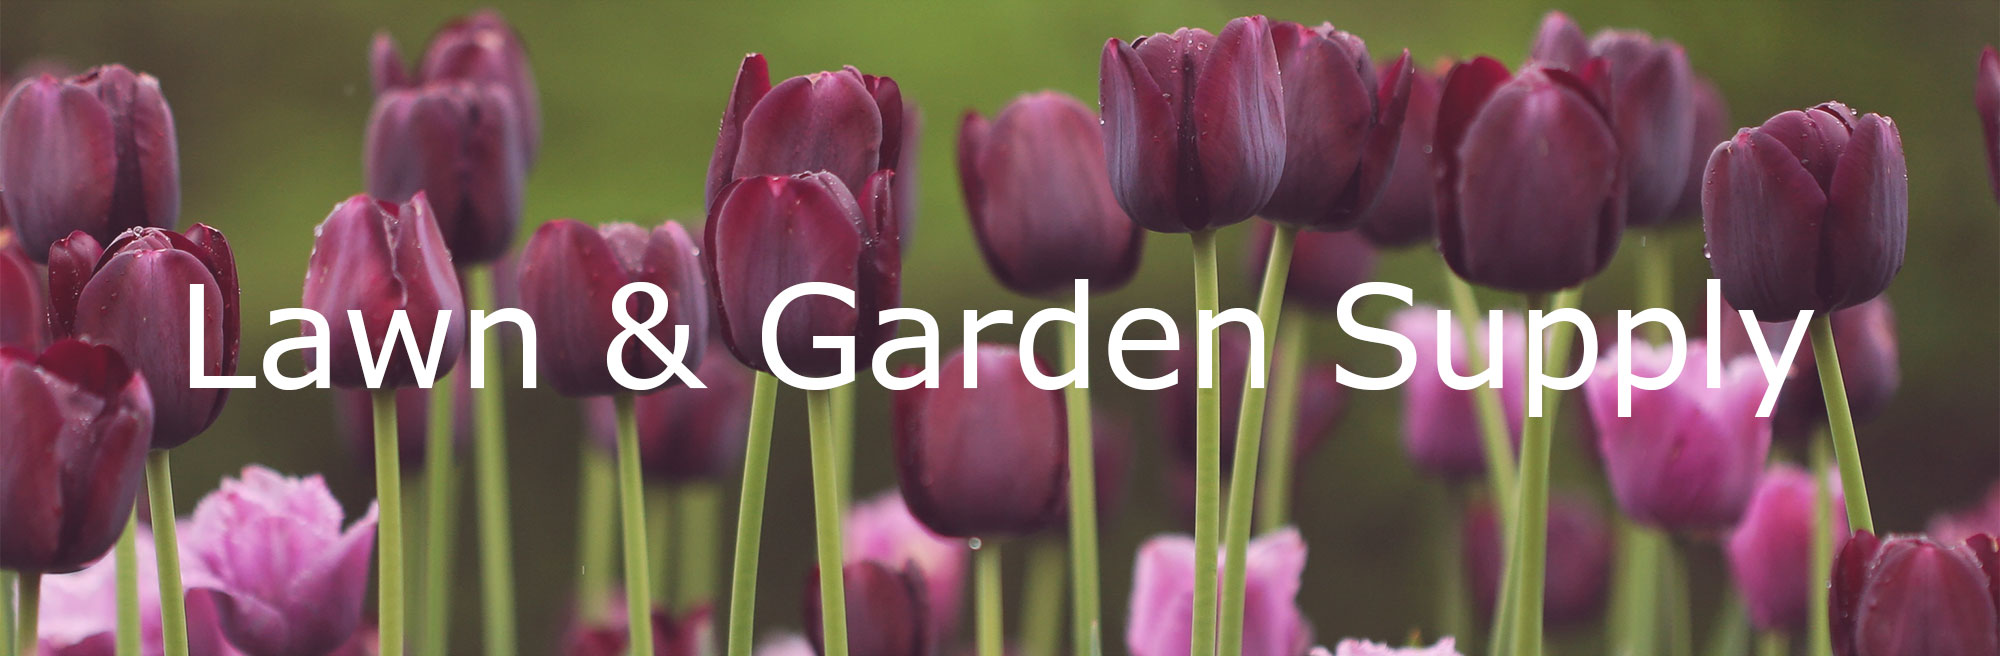 Lawn & Garden Supply, tulips growing in a lawn